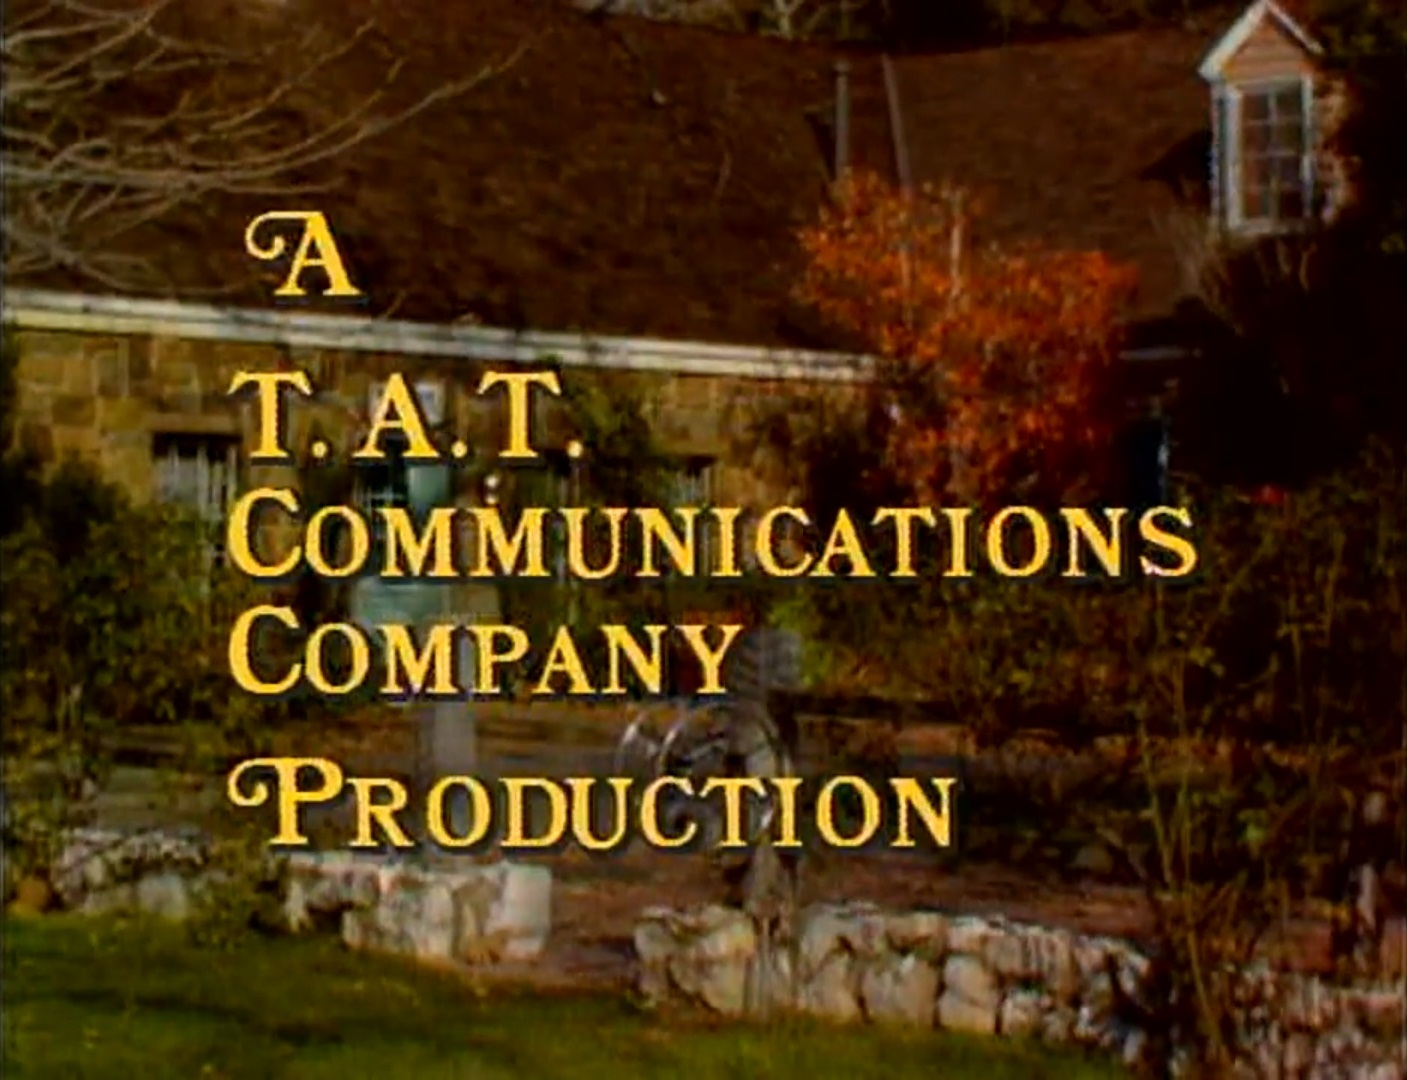 T.A.T. Communications Company (1982)